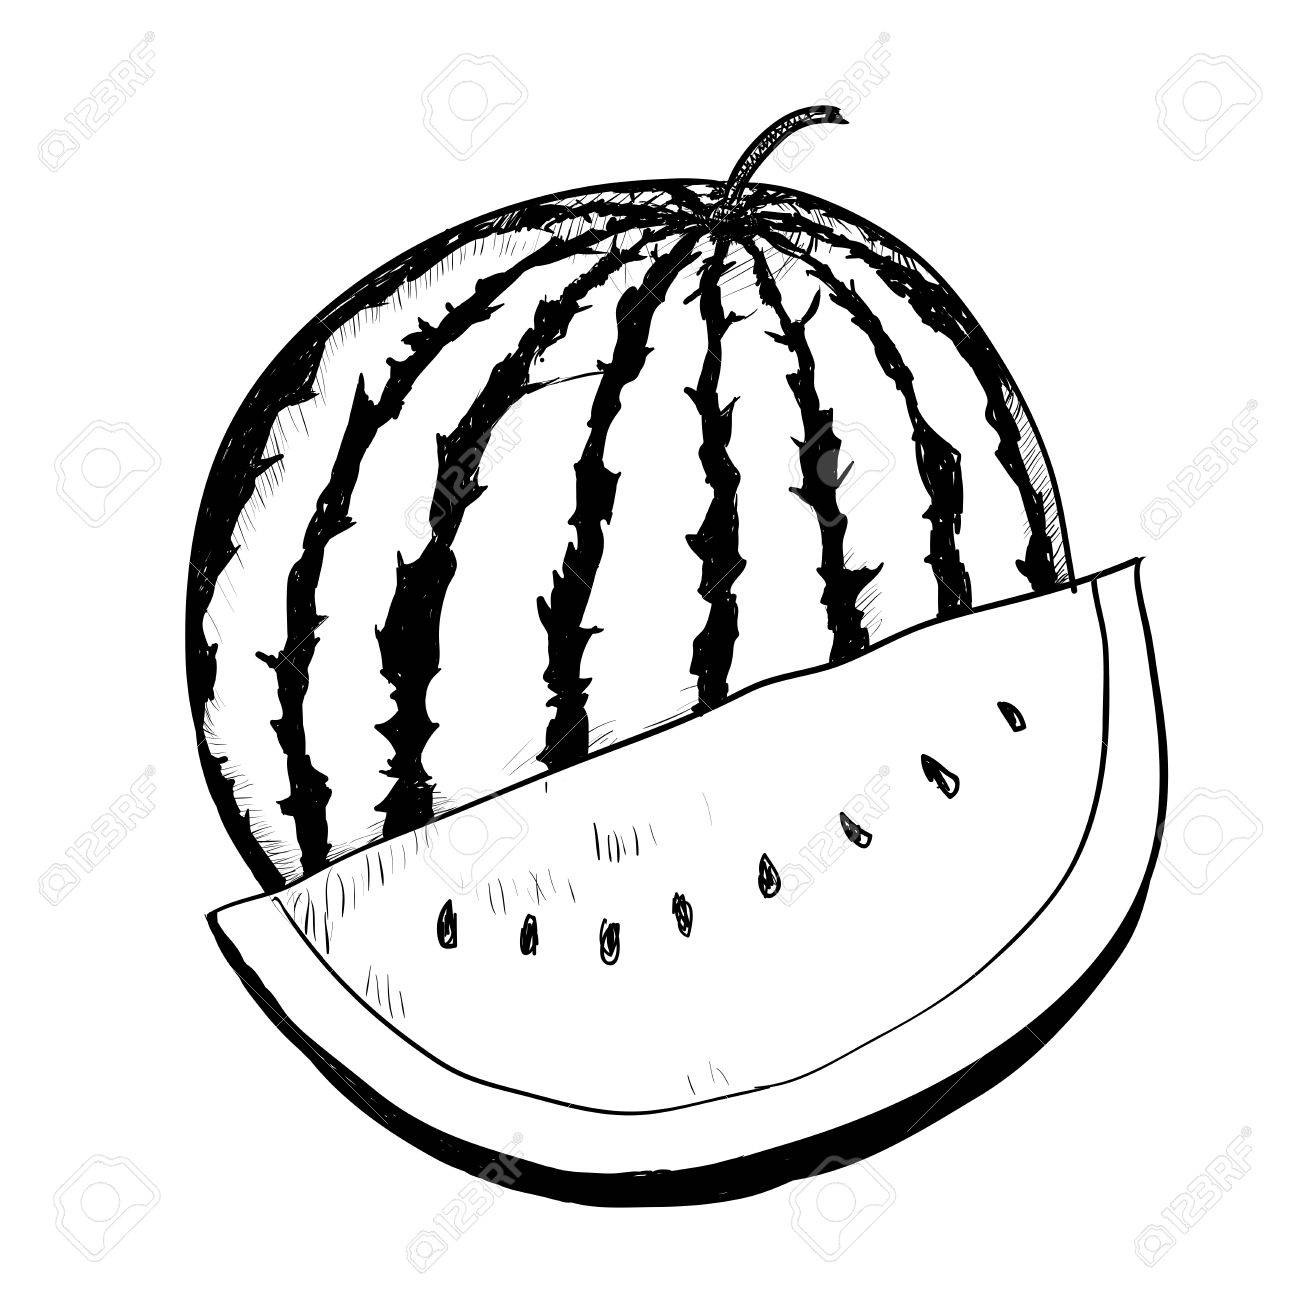 Hand drawing of watermelon on white background black and white simple line vector illustration for